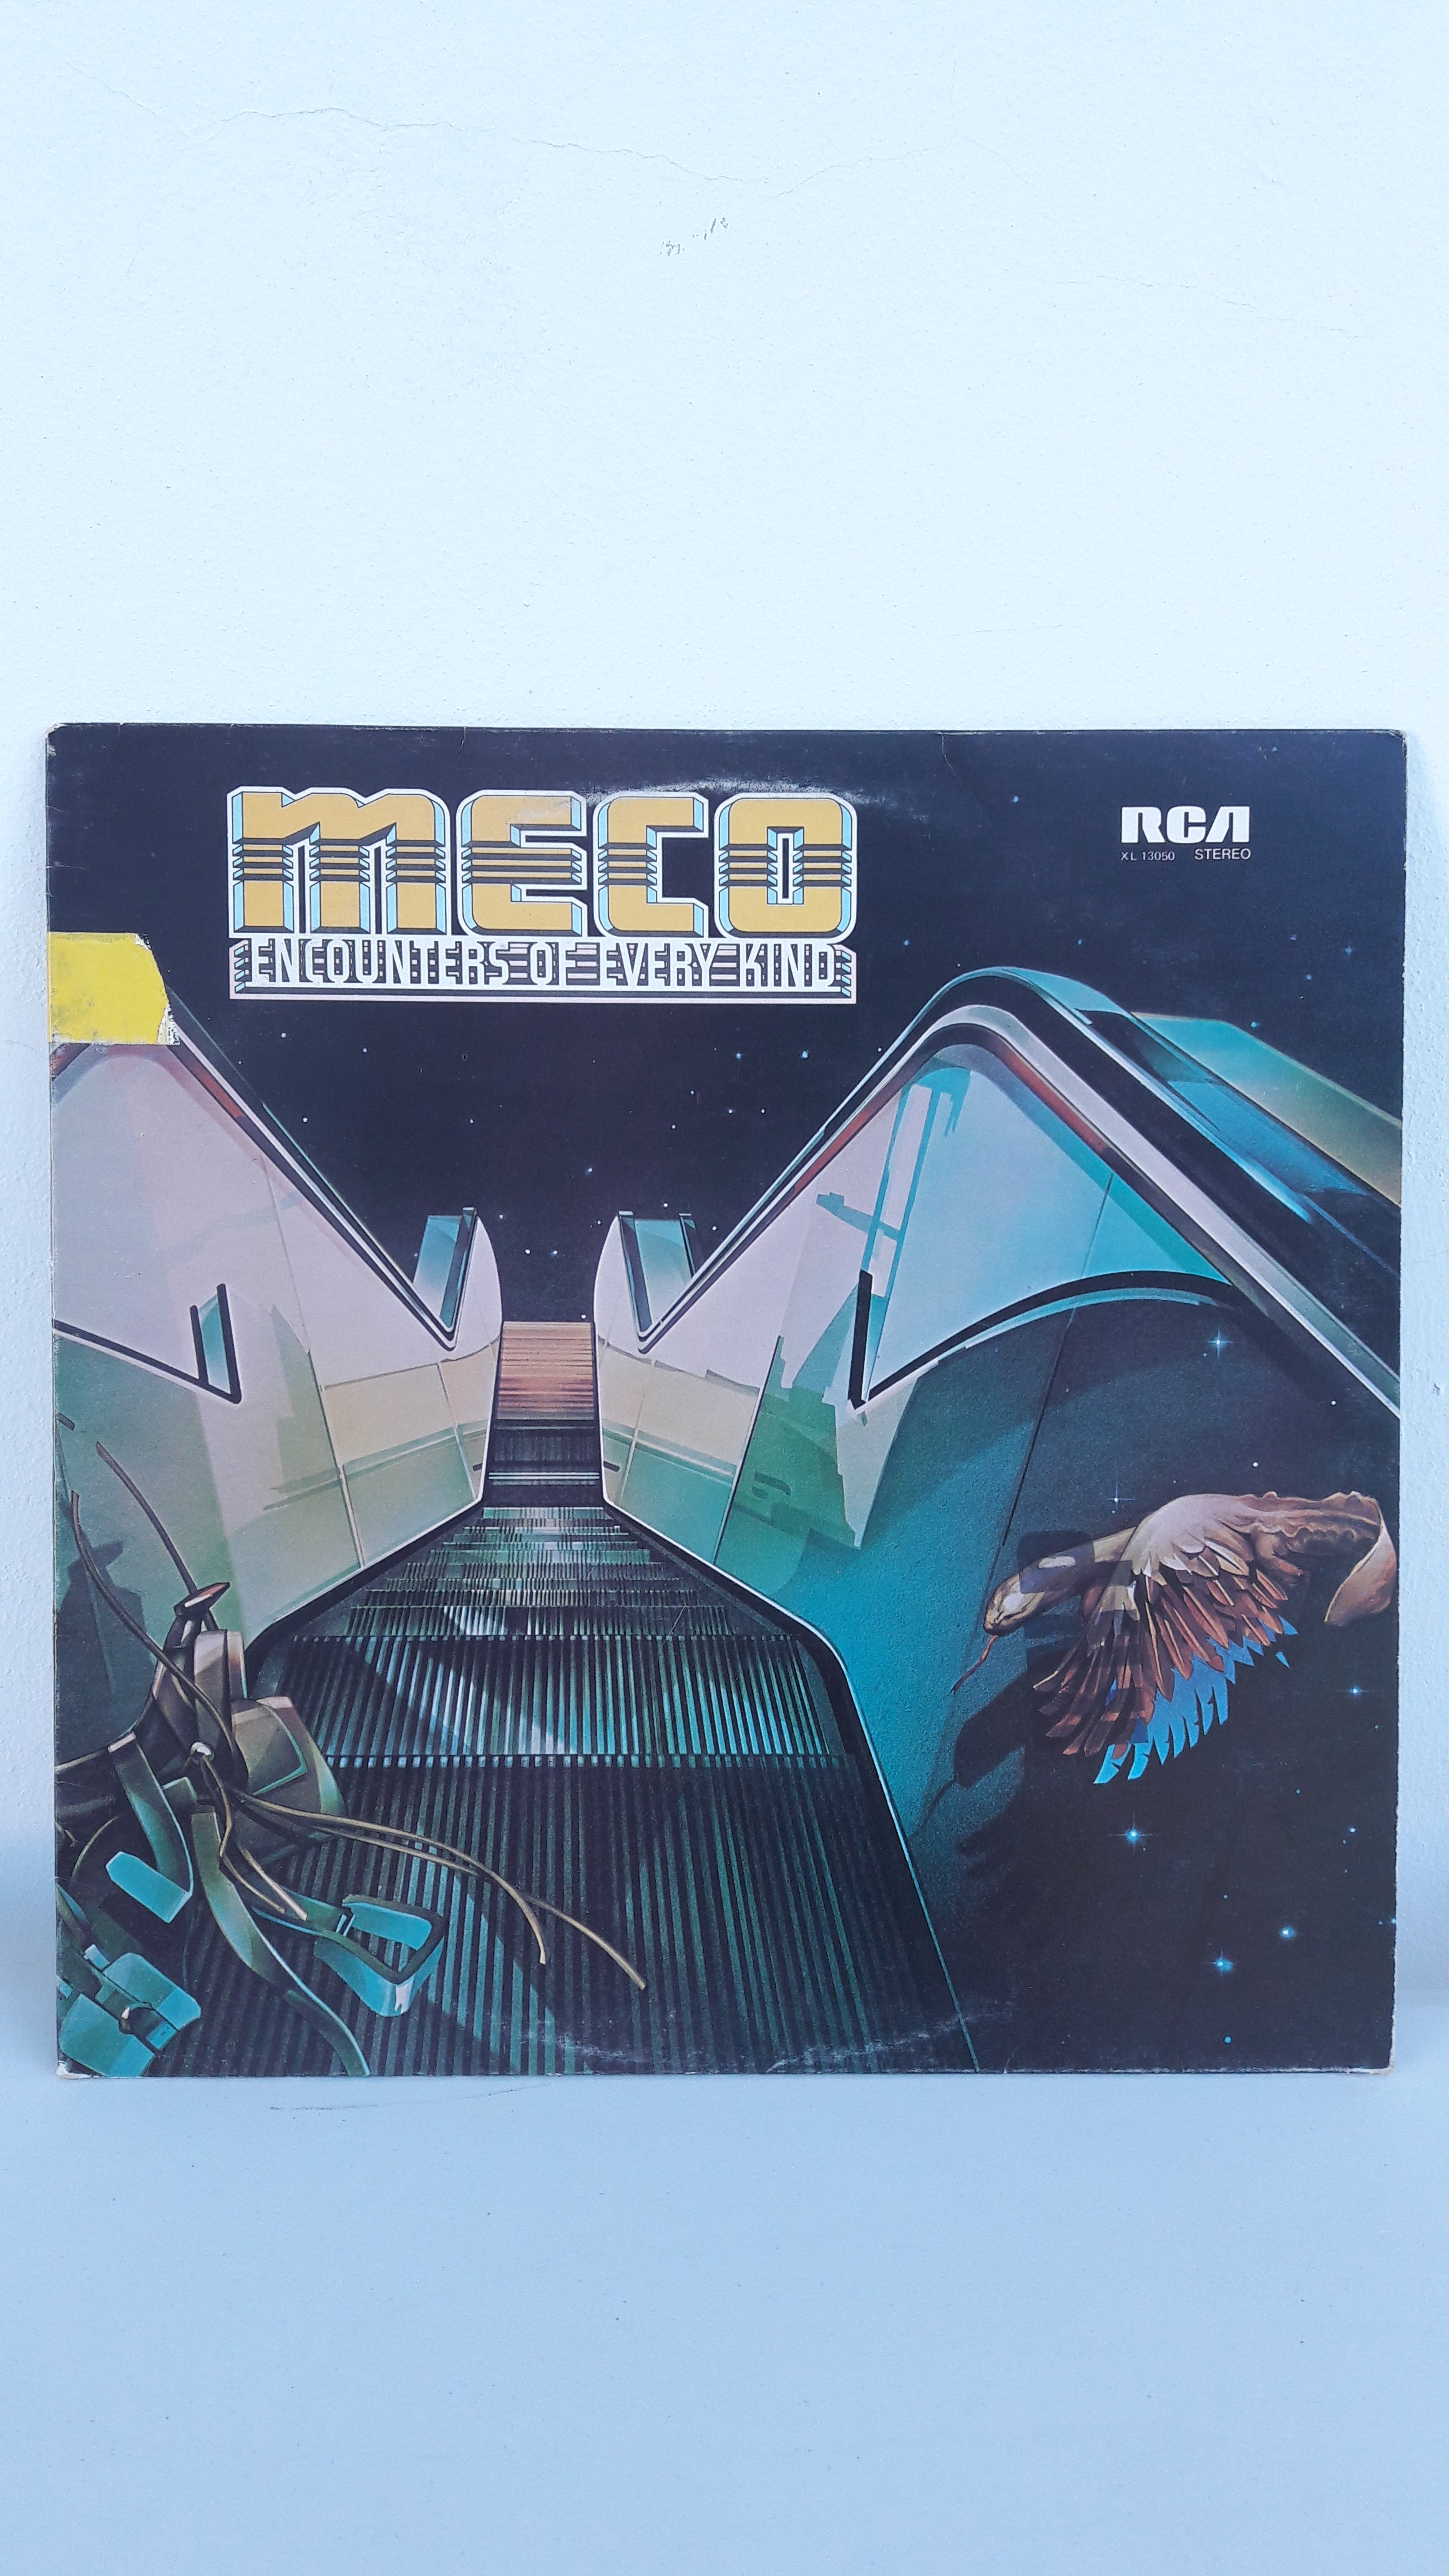 Meco - Encounters of Every Kind (1978)